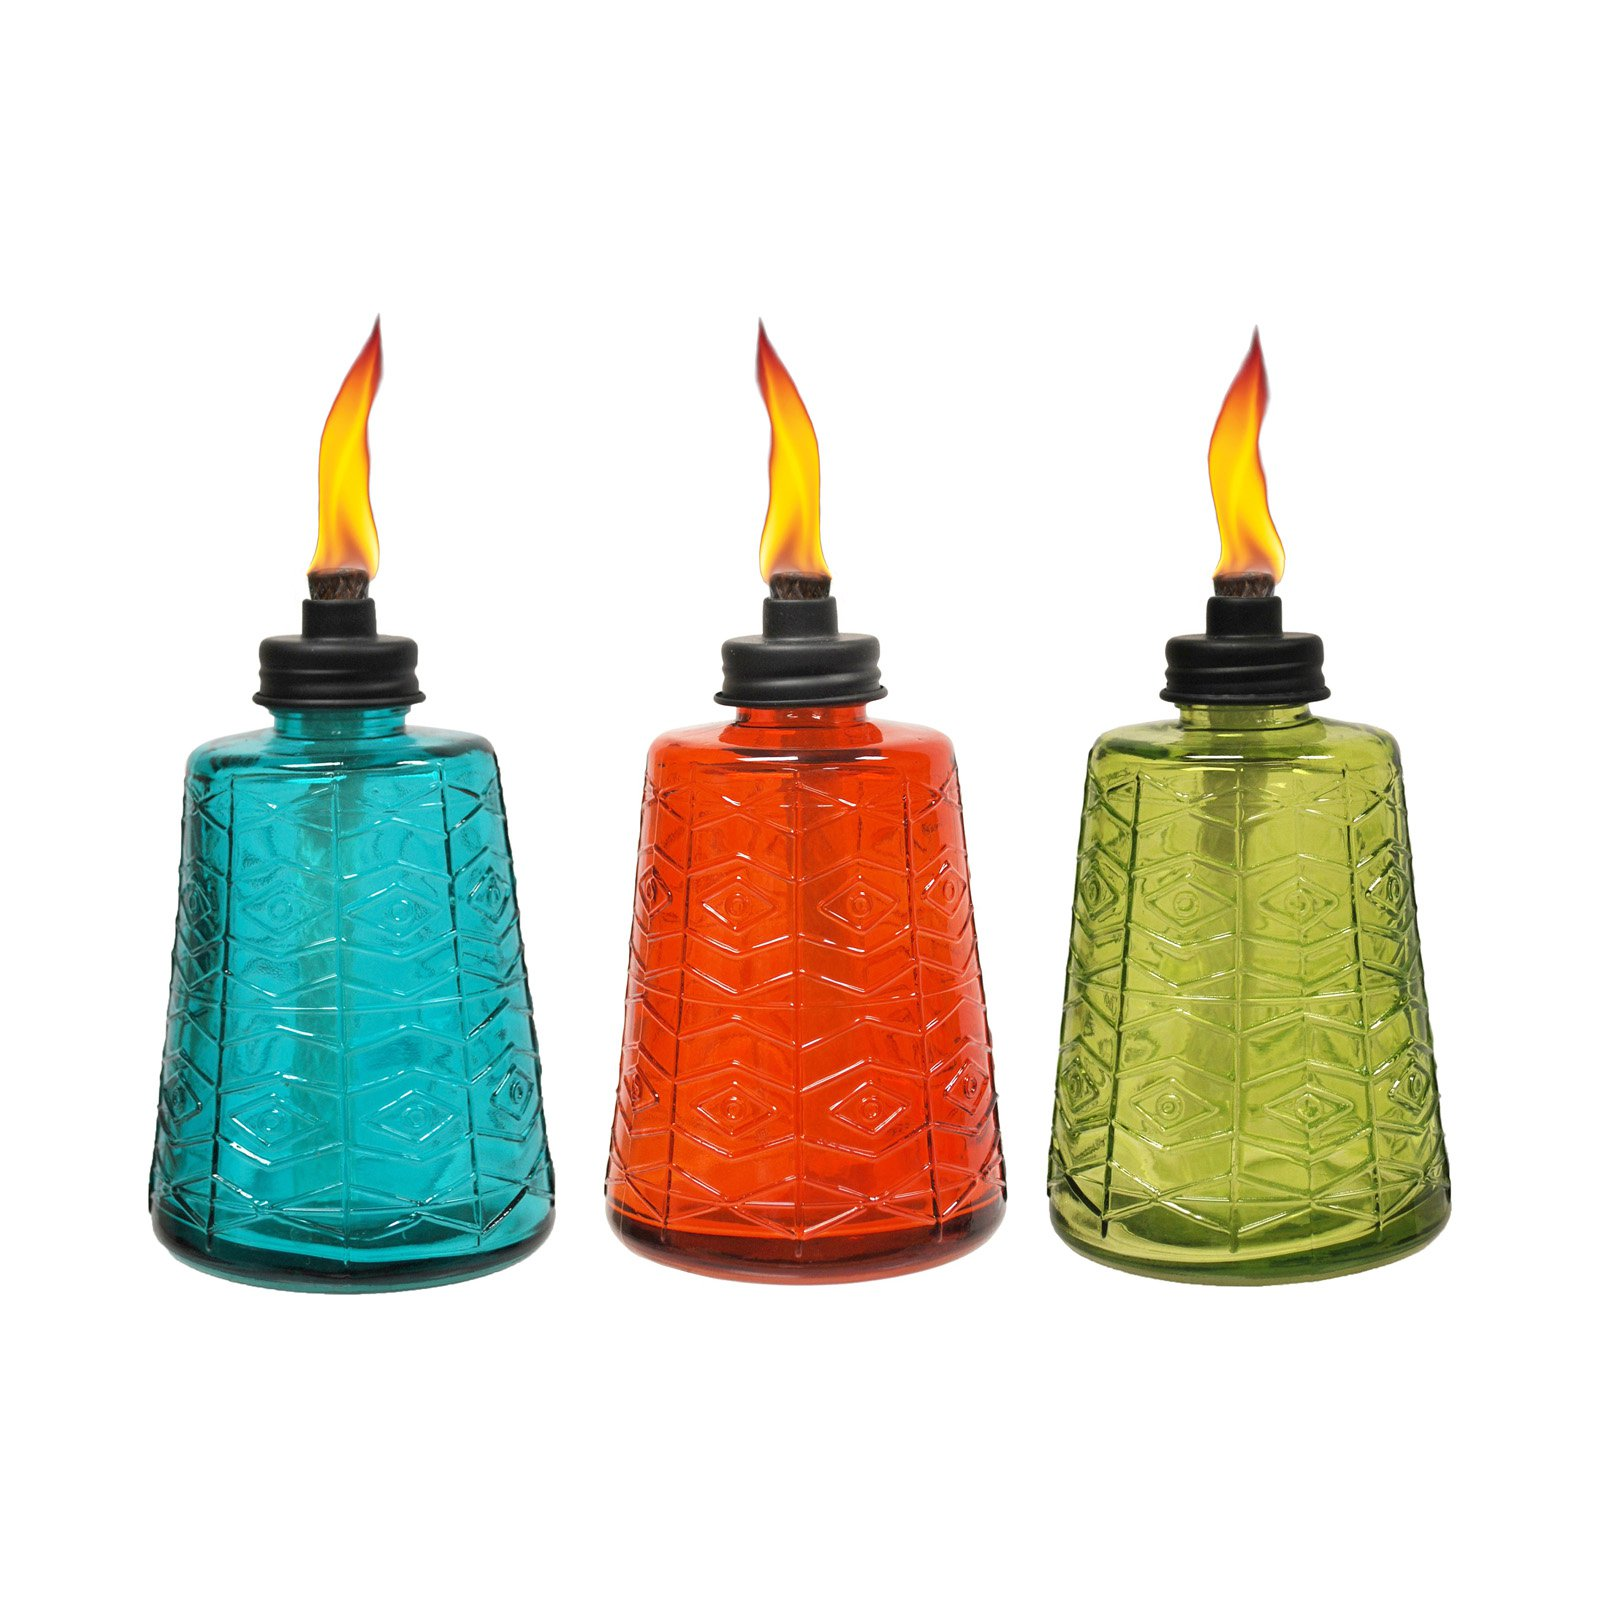 Tiki Glass 6 in. Outdoor Table Torch - Set of 3